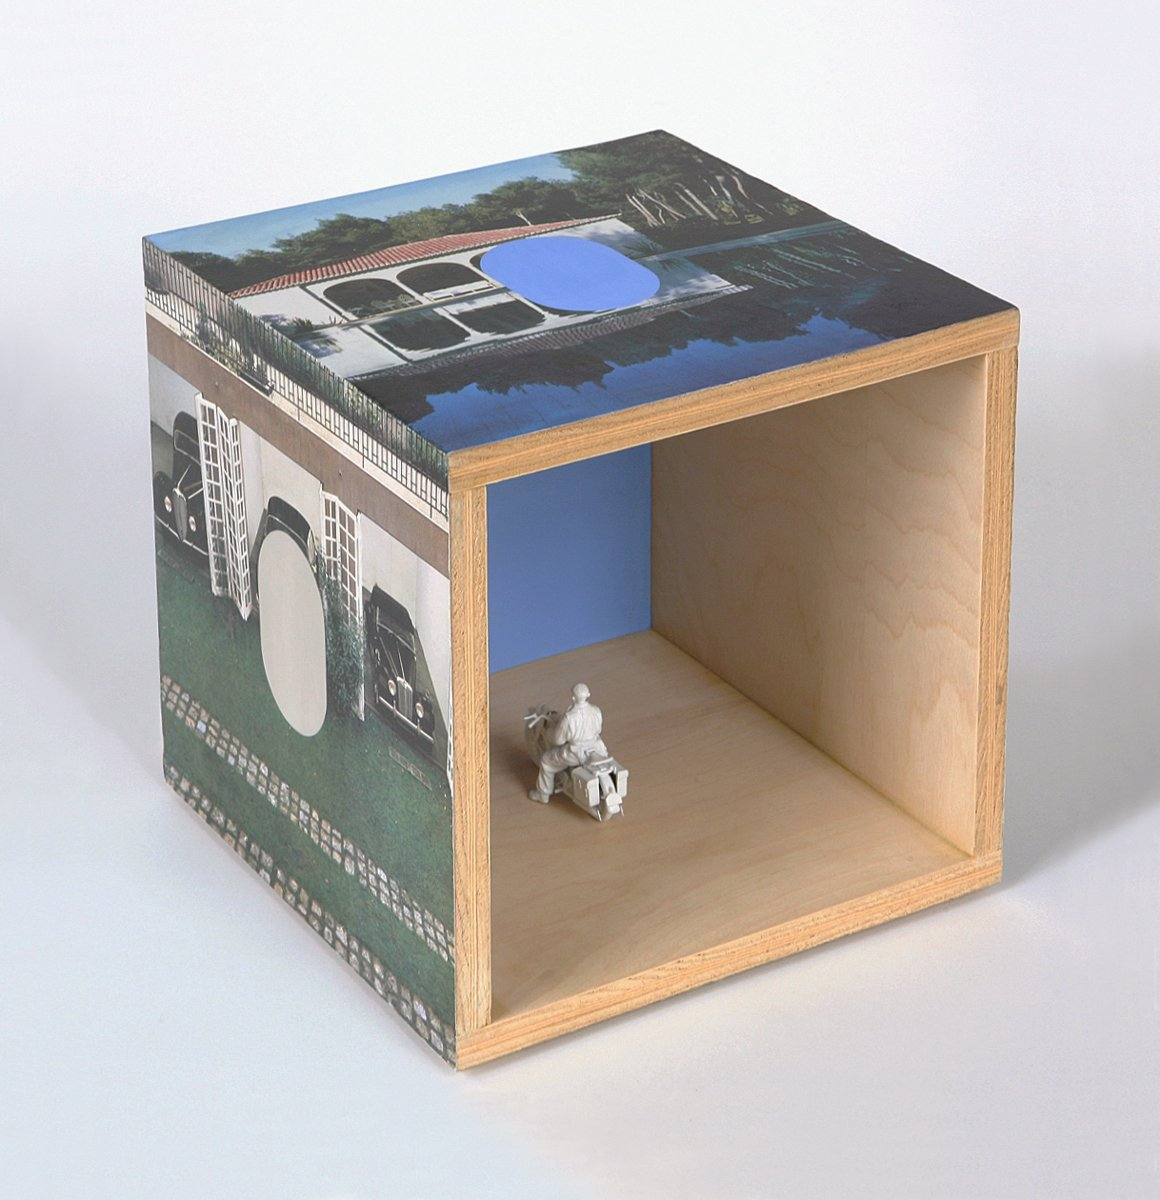 A plywood cube with imagery on the outside and a motorcycle model inside.